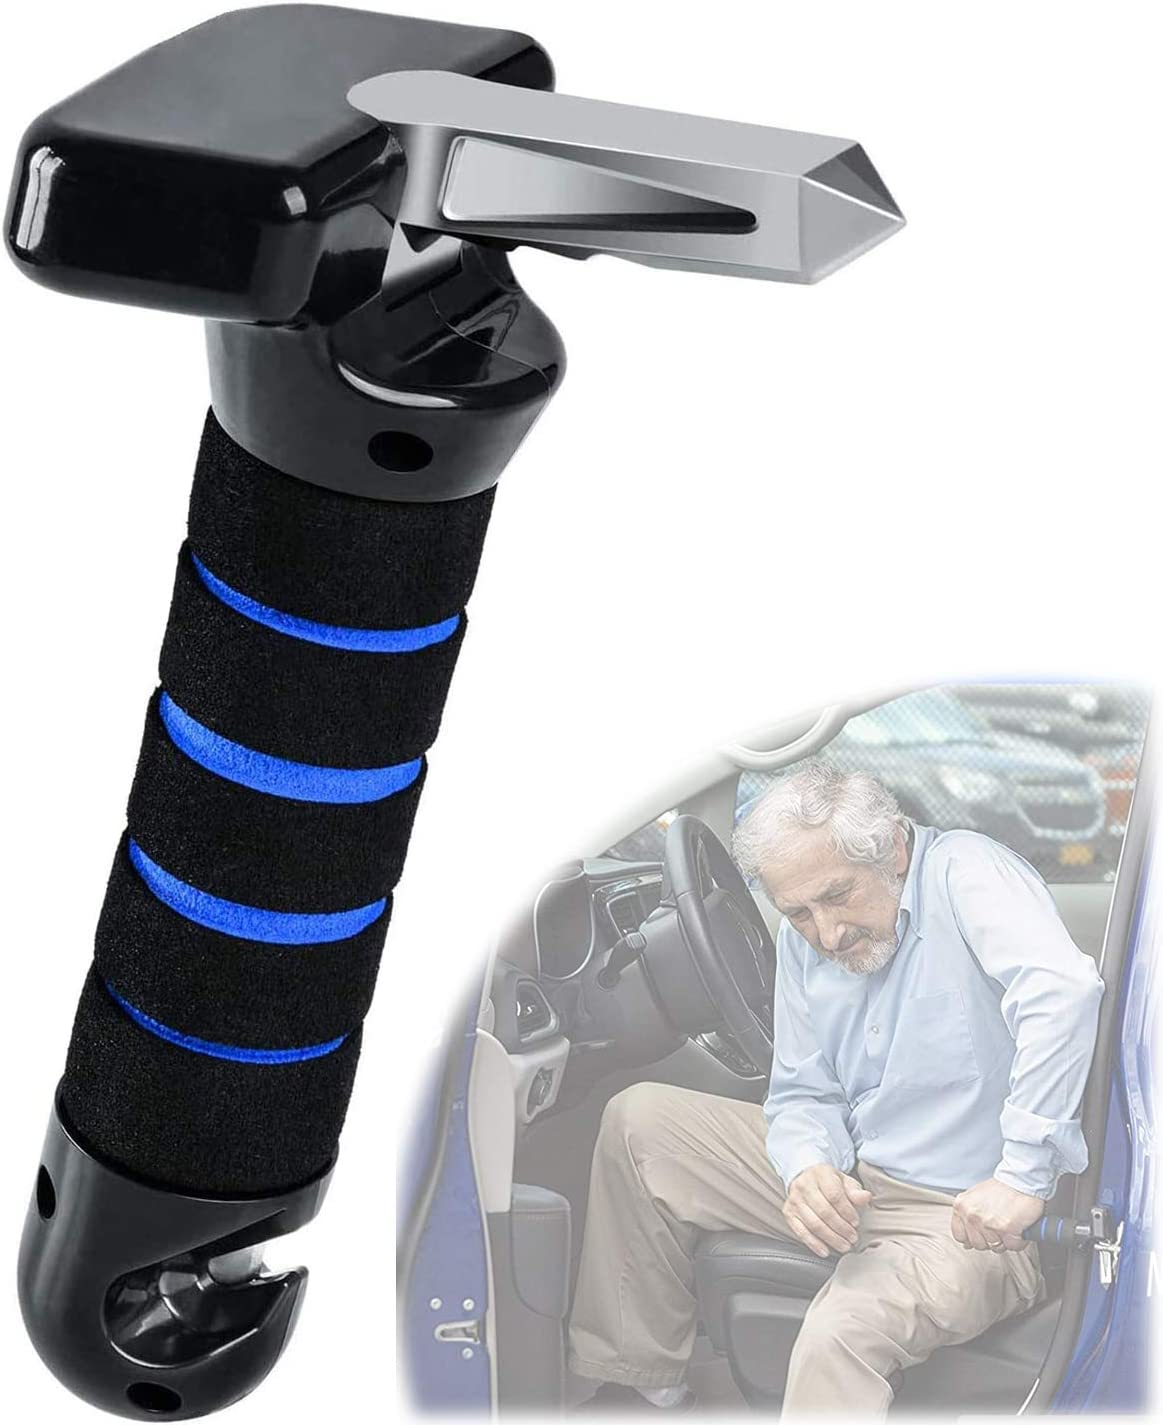 3 Super sale in 1 Car Assist Handle Vehicle for Portable Max 53% OFF Support Elderly H